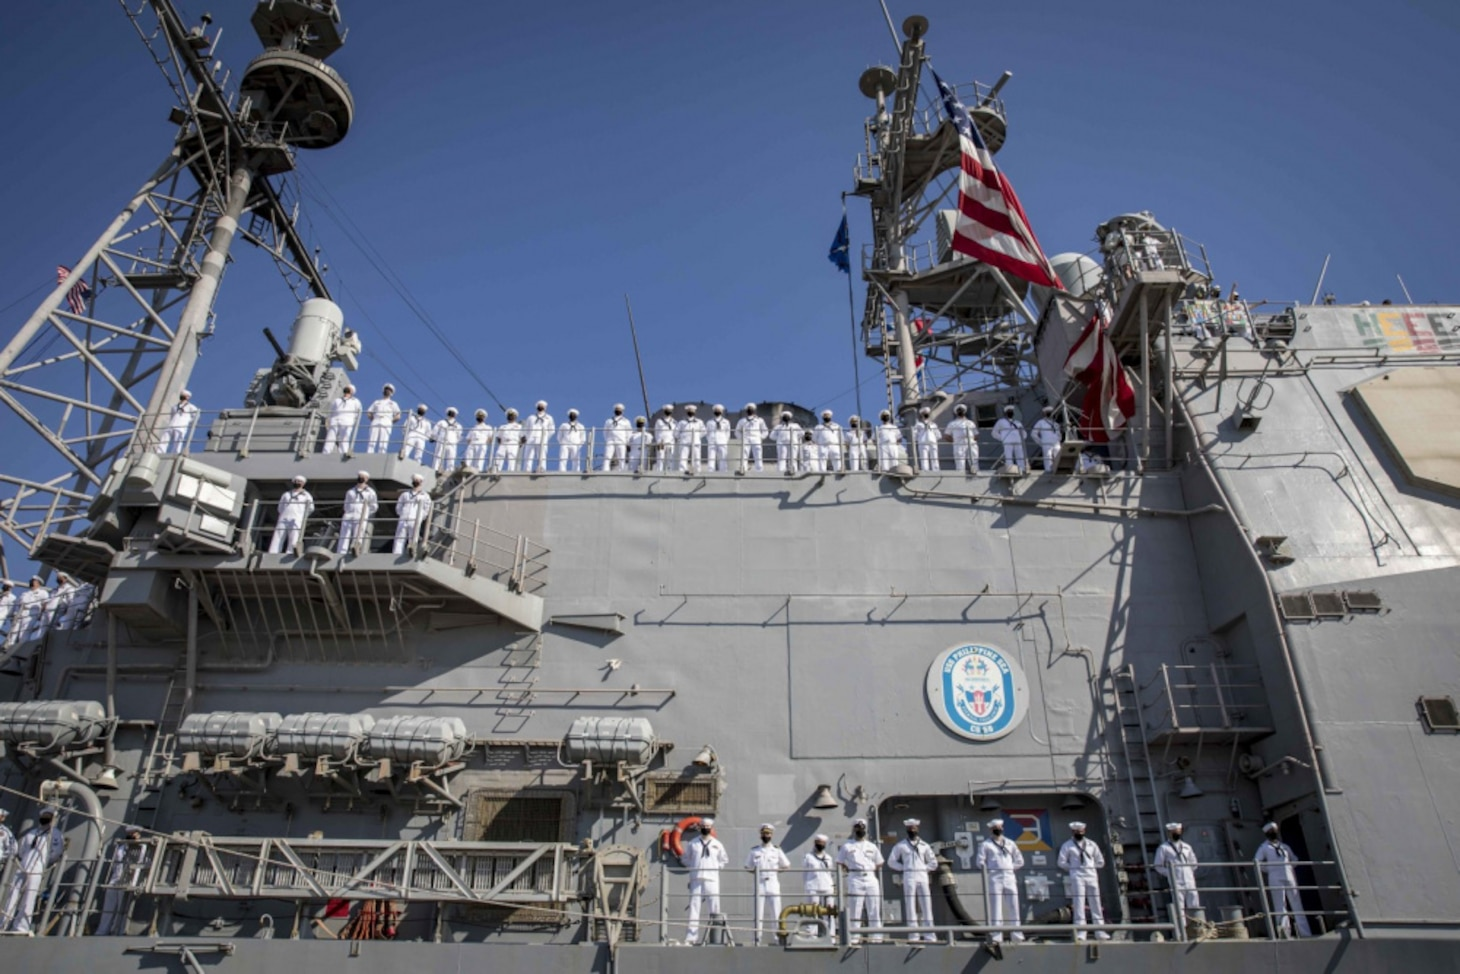 Sailors assigned to the guided-missile cruiser USS Philippine Sea (CG 58) man the rails as the ship pulls into Naval Station Mayport, Fla. Philippine Sea returned from a 10-month deployment to the U.S. 2nd, 5th, and 6th Fleet areas of operation.